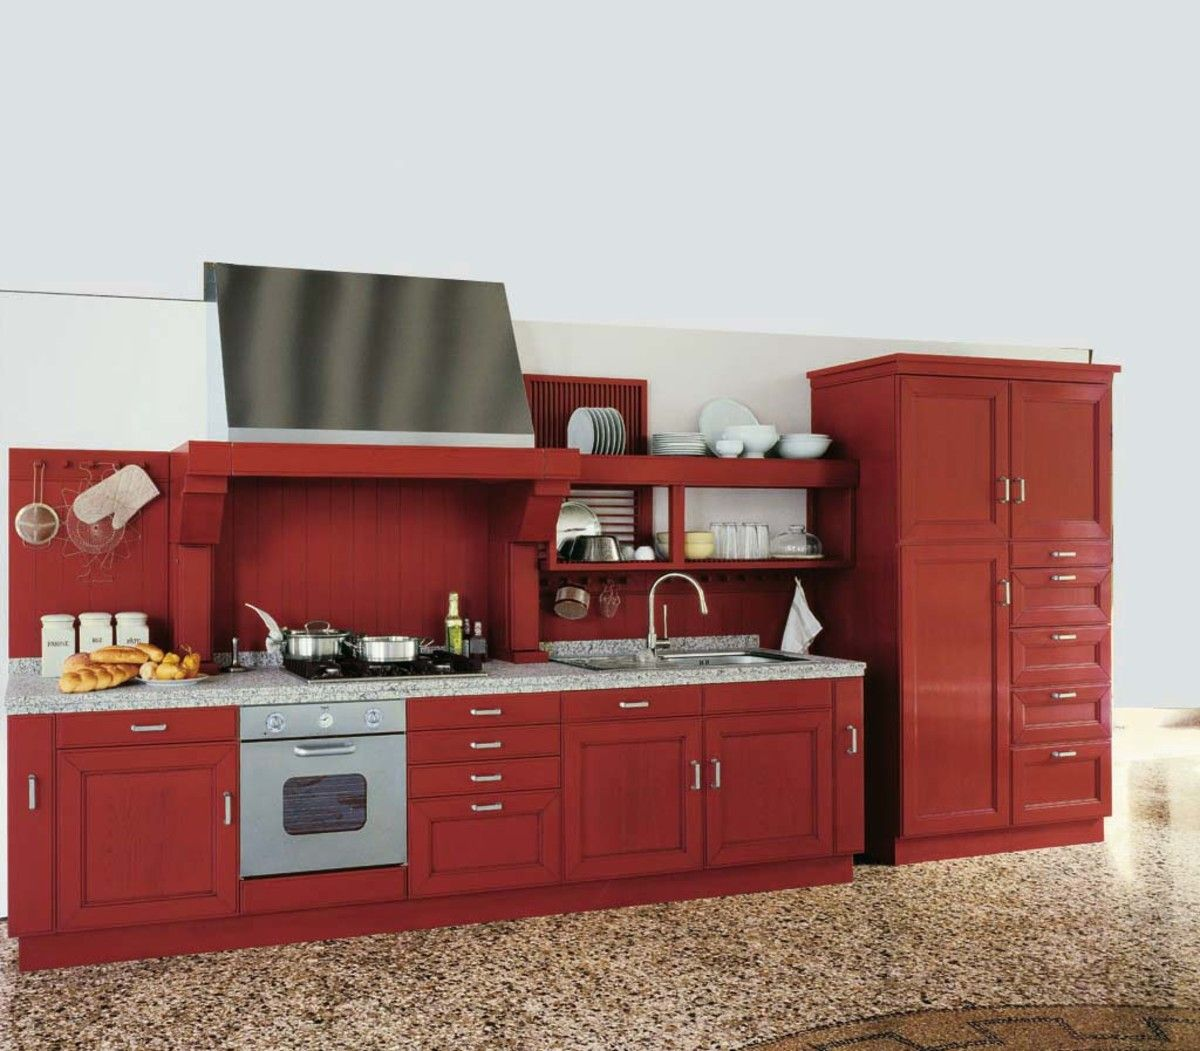 Accessories Furniture Adorable Red Wood Kitchen Cabinet Design Inspiration With Stylish White Red Kitchen Cabinets Kitchen Cabinets Height Cabinets For Sale